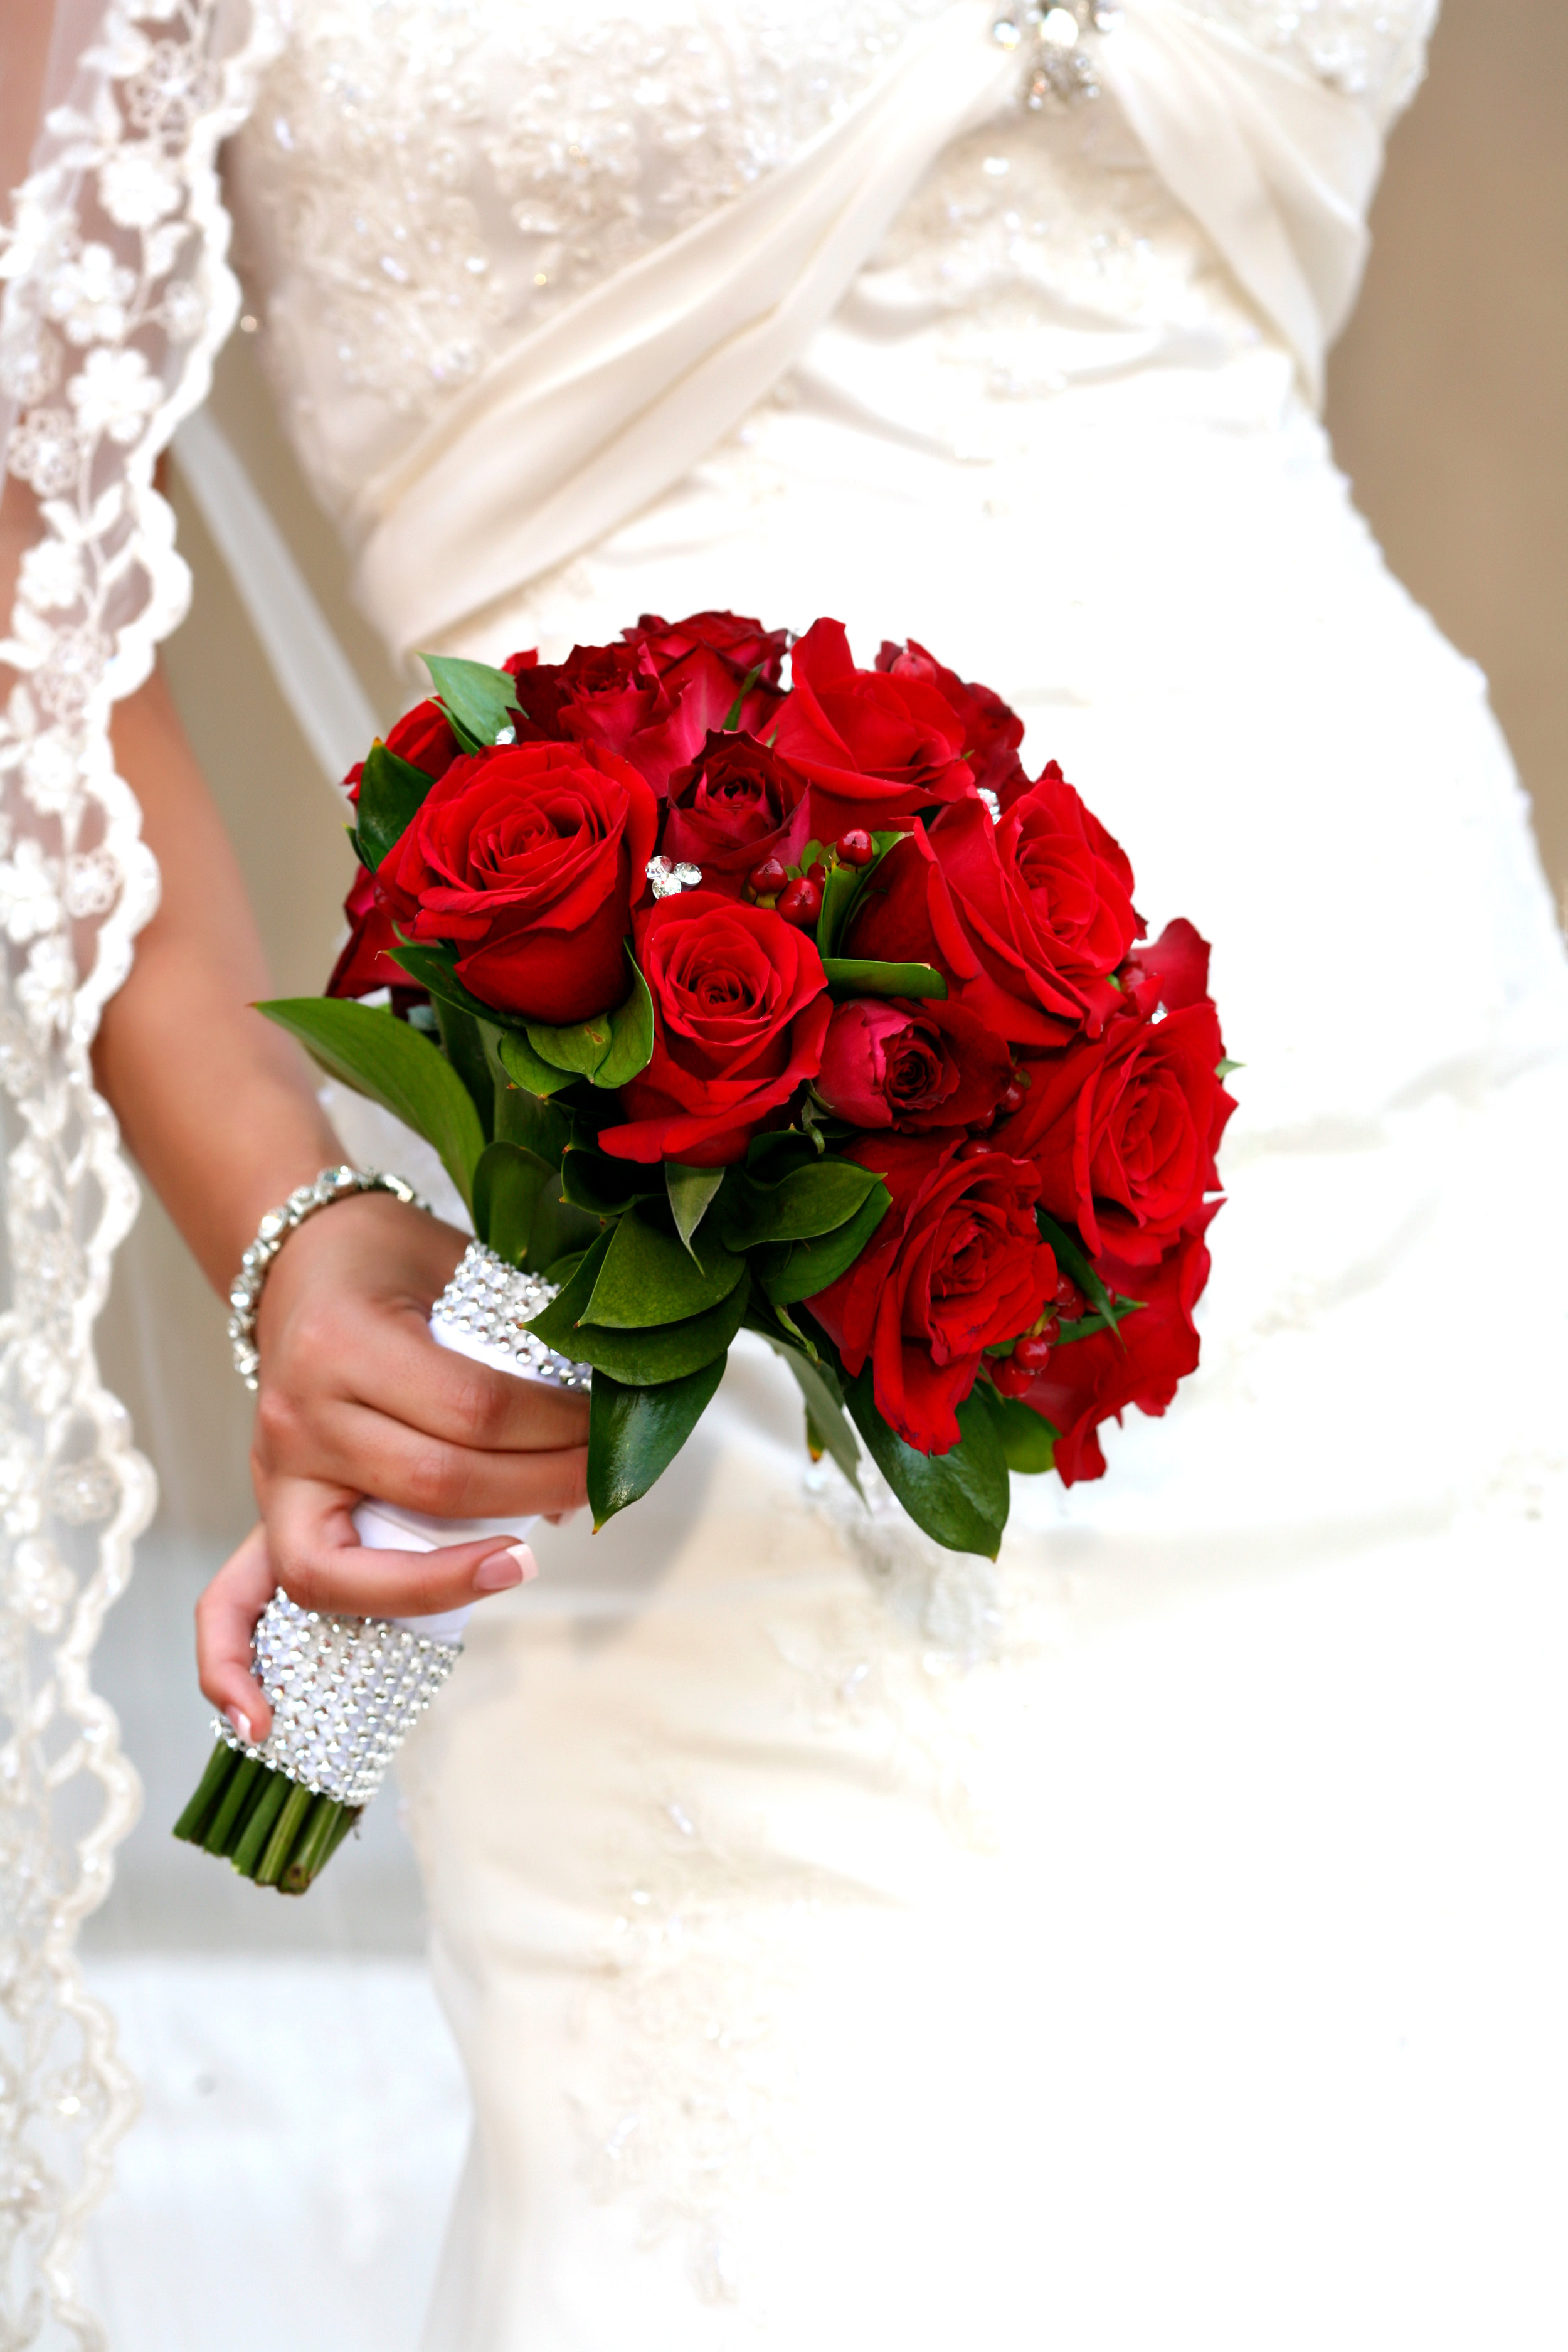 ShadowcatcherGalleryOne_SanDiegoWeddingPhotogrpaher_061.jpg